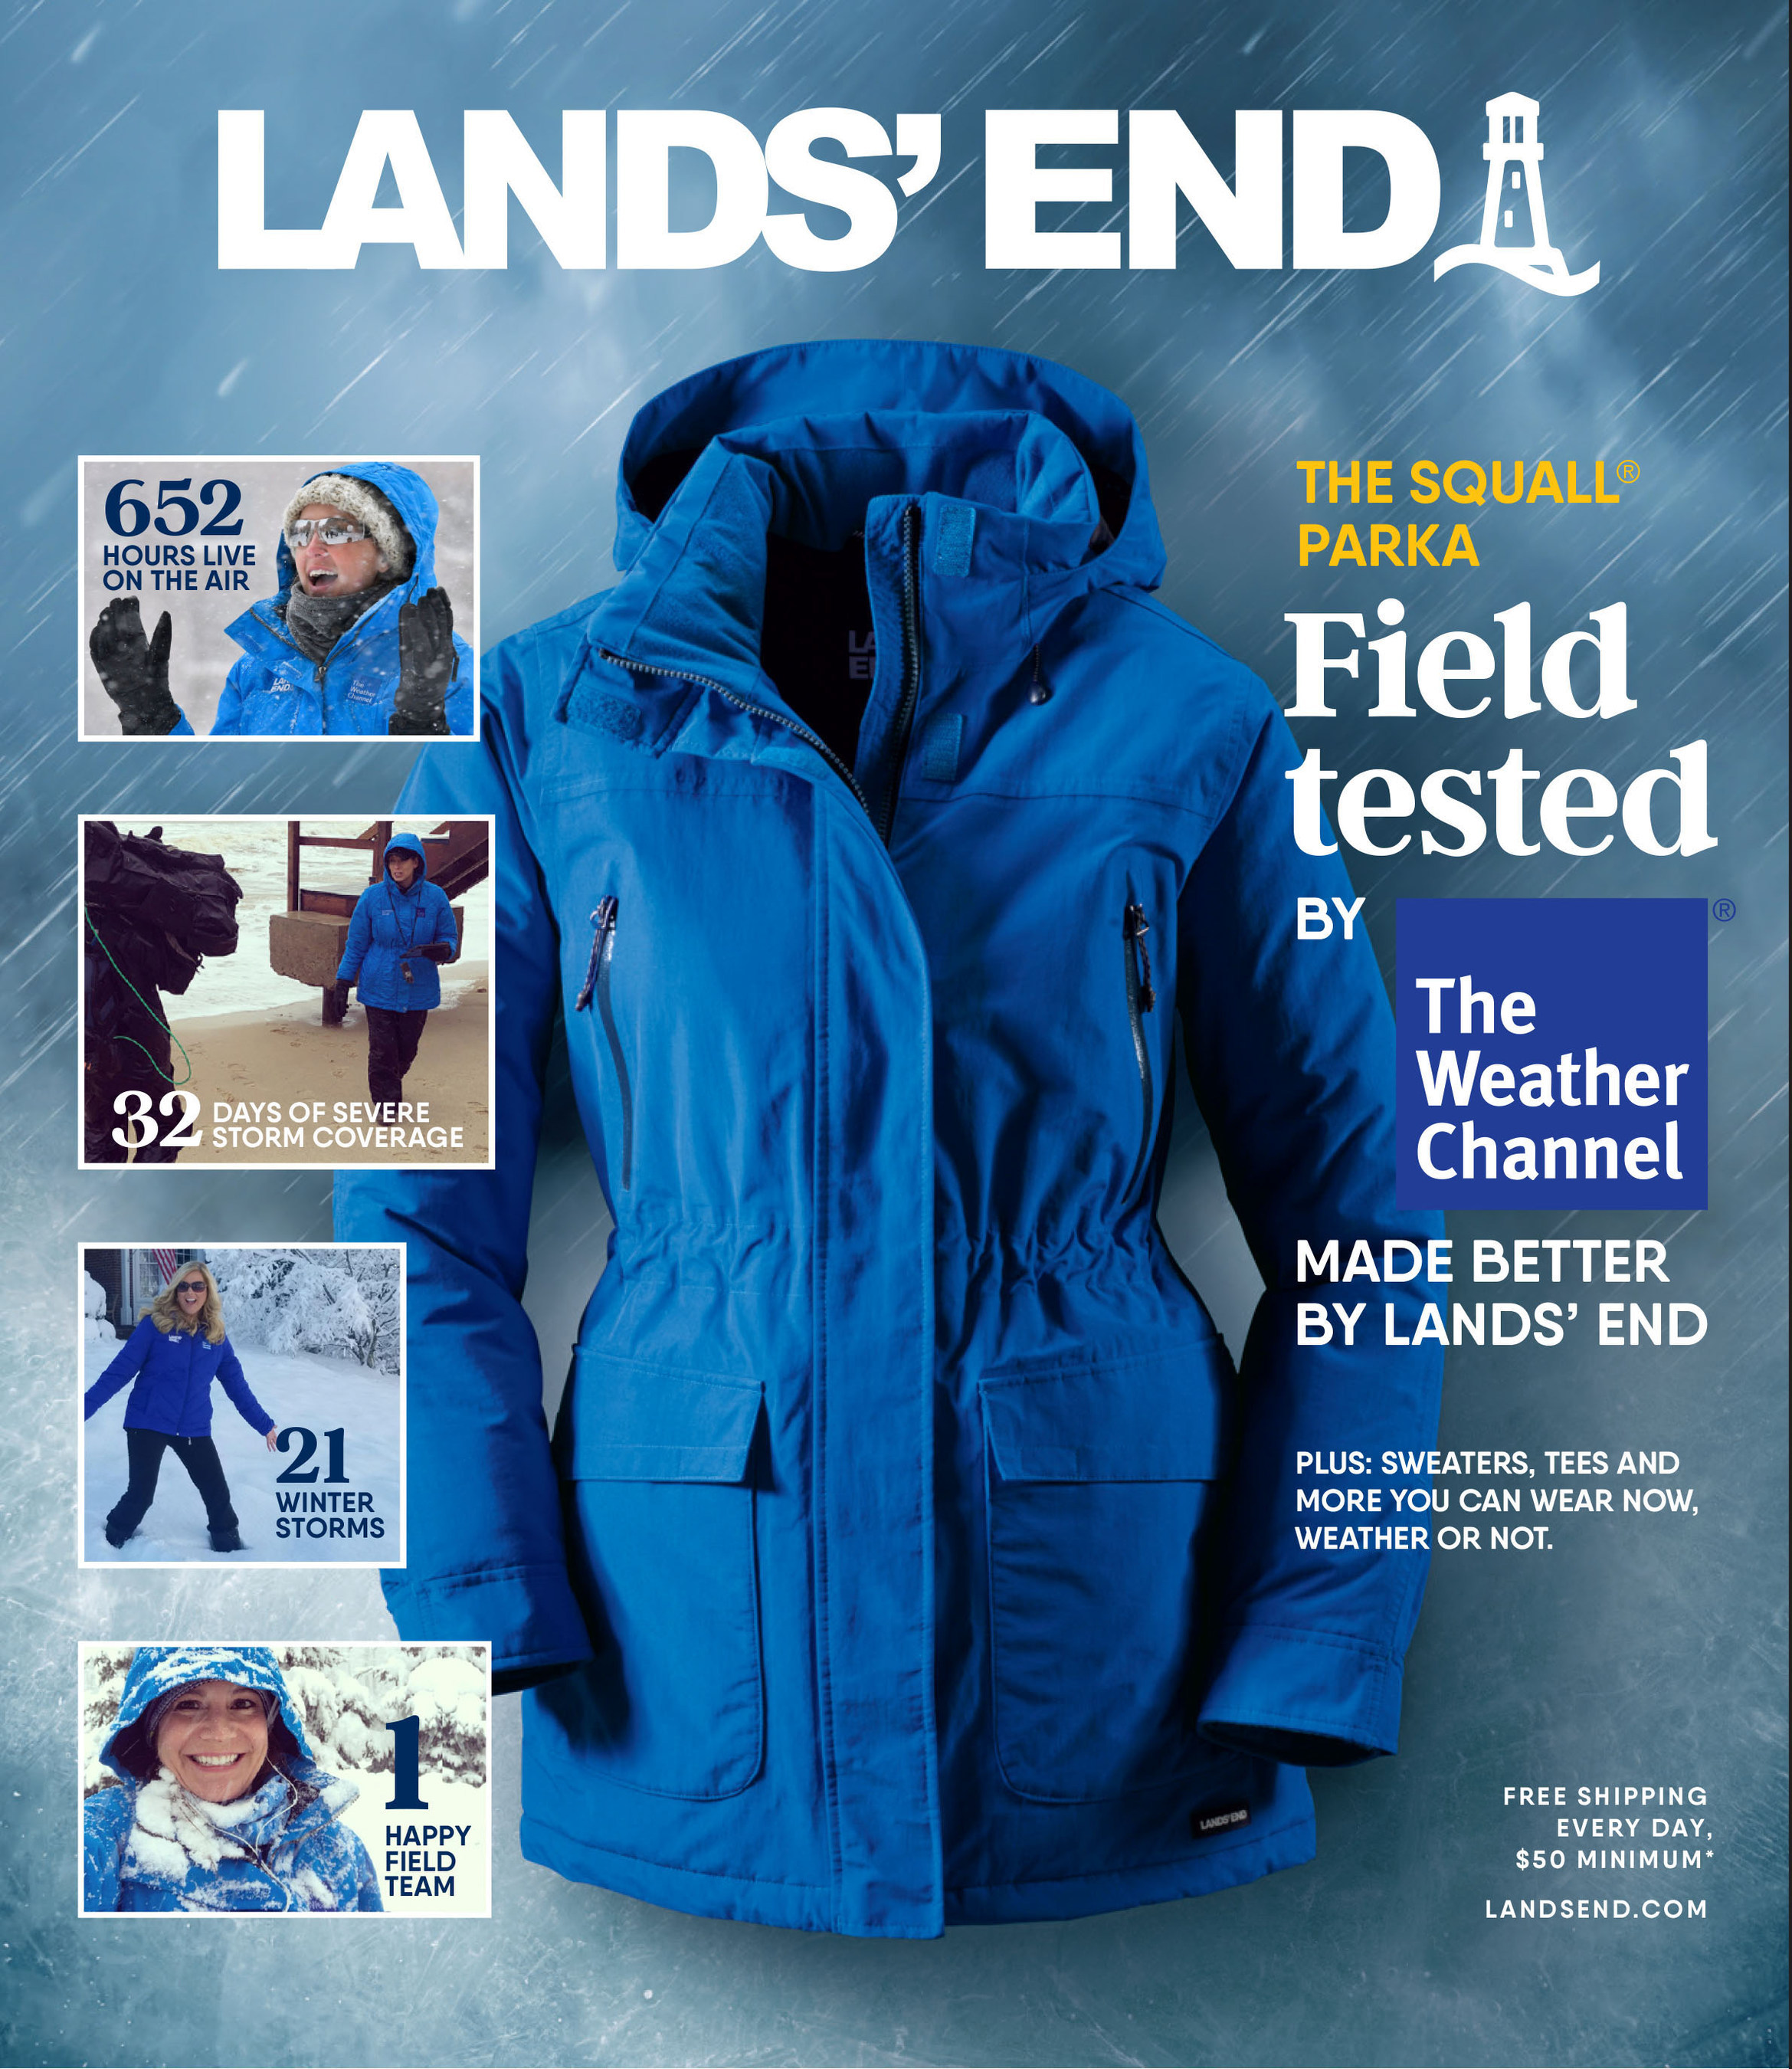 Lands' End And The Weather Channel Celebrate Year One Of